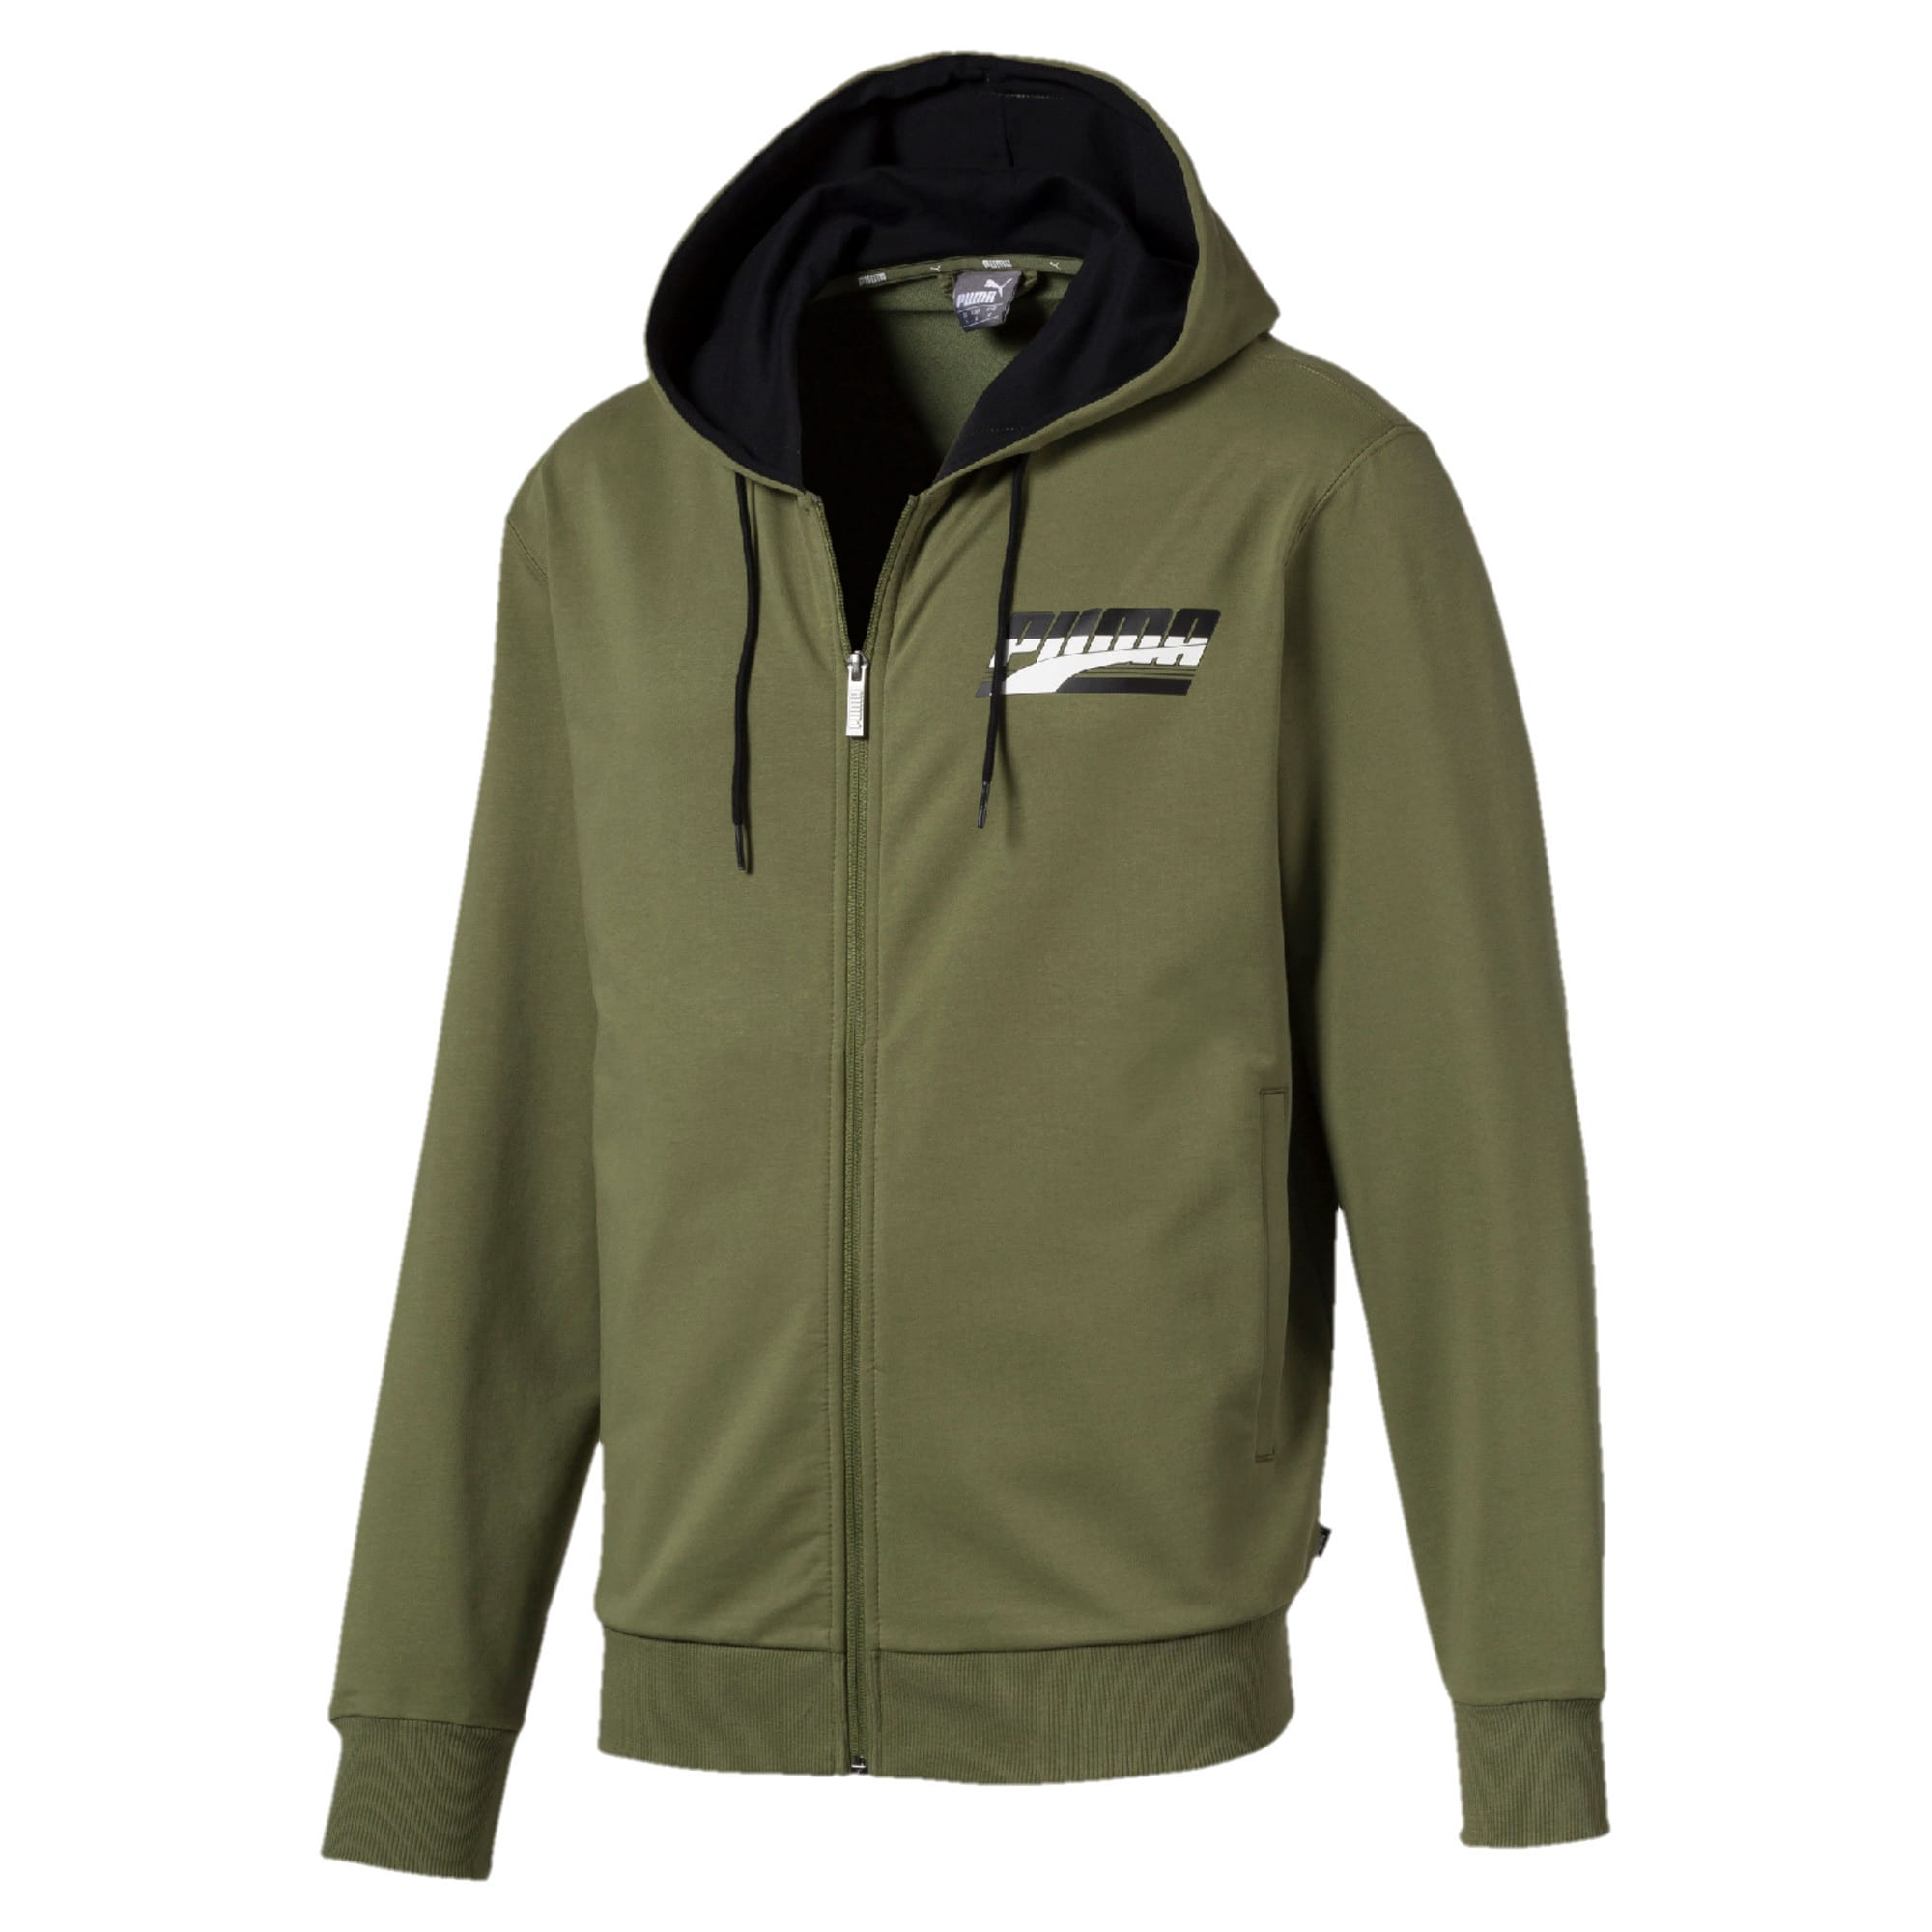 Thumbnail 1 of Rebel Men's Hooded Jacket, Olivine, medium